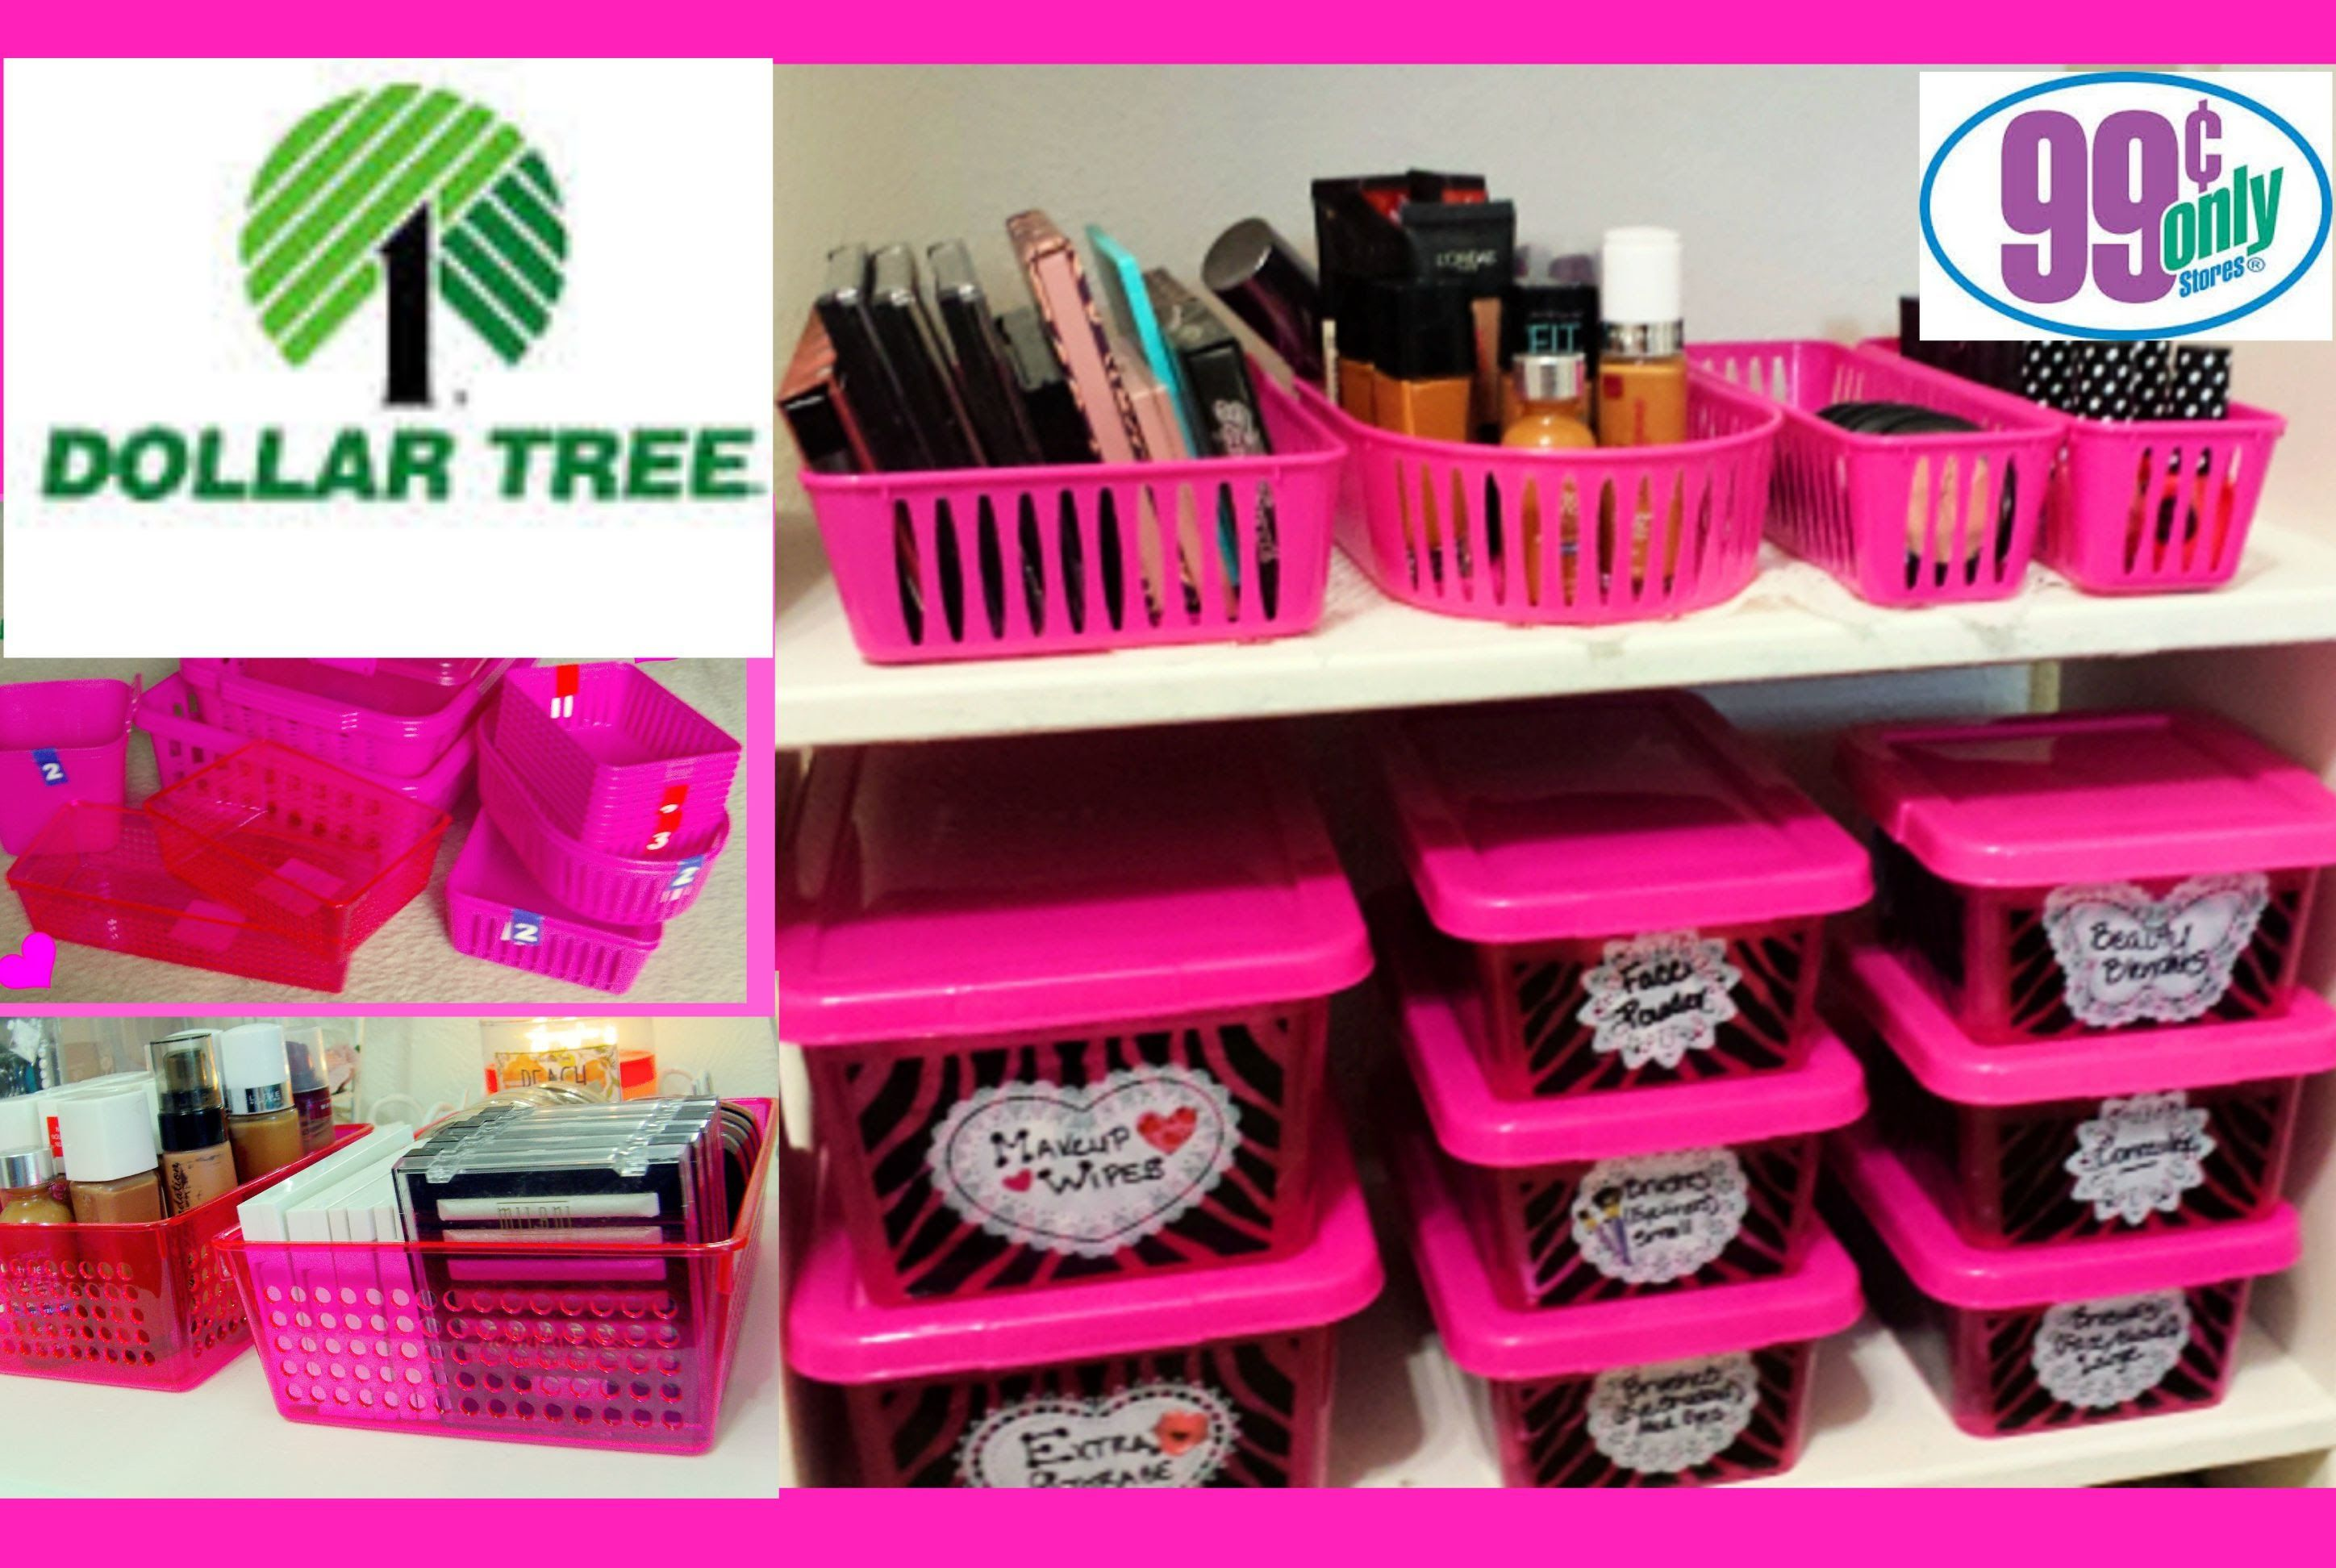 1 Makeup Organization Storage Ideas Dollar Tree 99 Cents